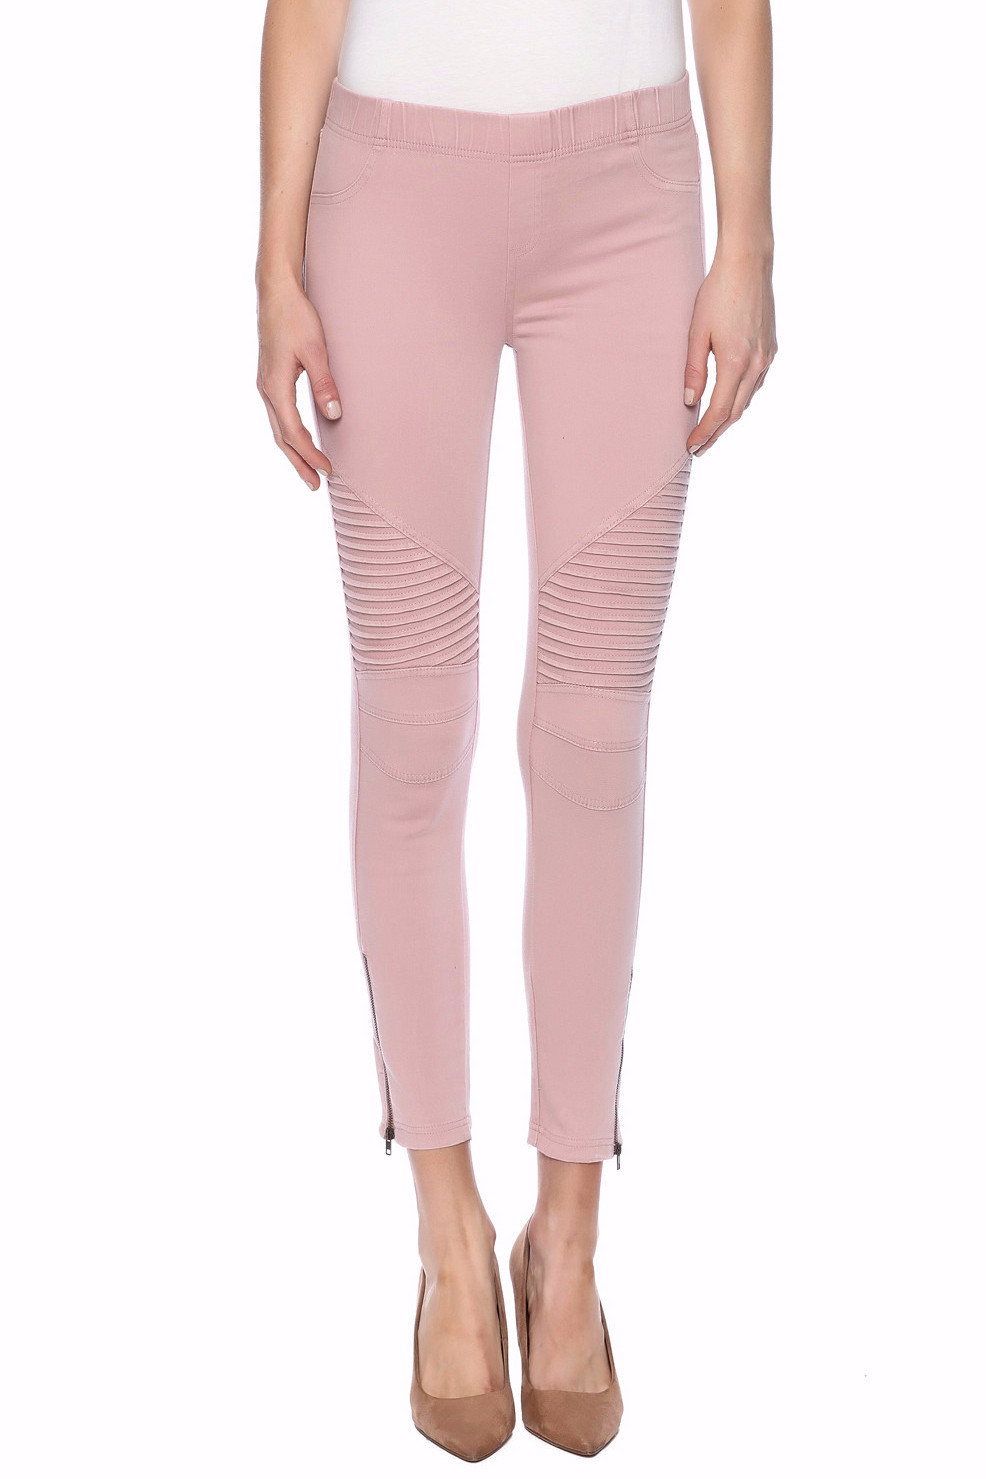 zip moto leggings - dusty pink - s - Pull on denim leggings with faux front pockets, moto details at the knee and an ankle zip. These best-selling moto leggings are extremely comfortable and are the perfect wardrobe staple year round. Wear in warm weather with a tee and flip flops. When the weather gets chilly add on an oversized sweater! Add booties or heels to complete the look.View Leggings